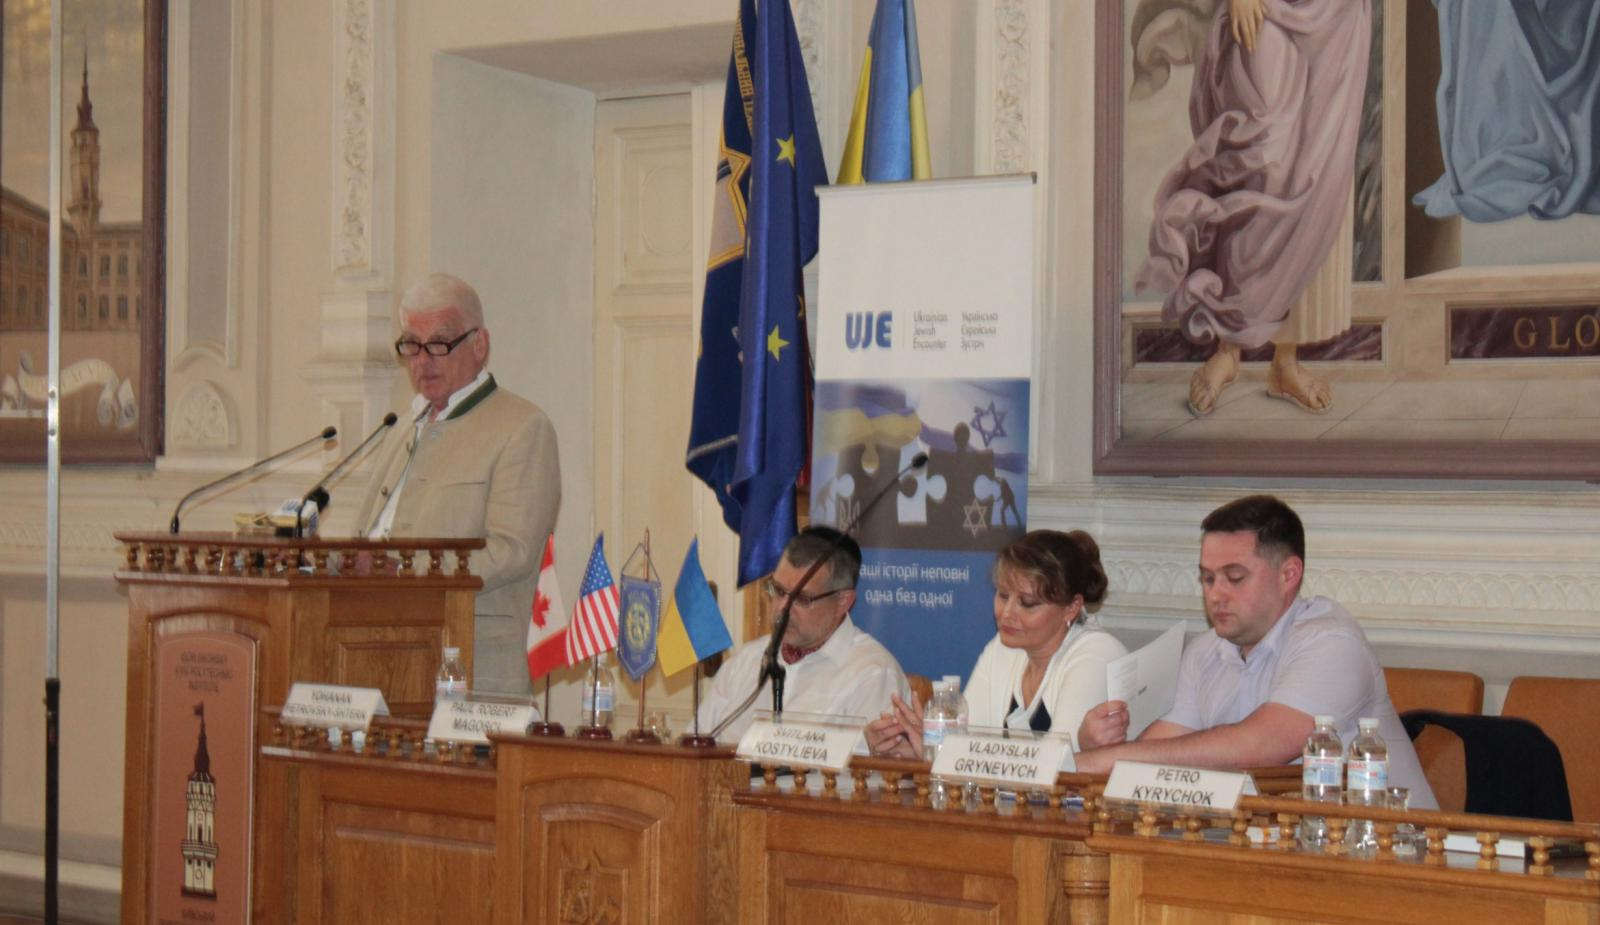 """2019.05.29 Historians P-R.Mahochiy and Y.Petrovsky-Shtern have presented their book """"Jewries and Ukrainians: millennium of coexistence"""" in the Igor Sikorsky Polytechnic Institute"""""""